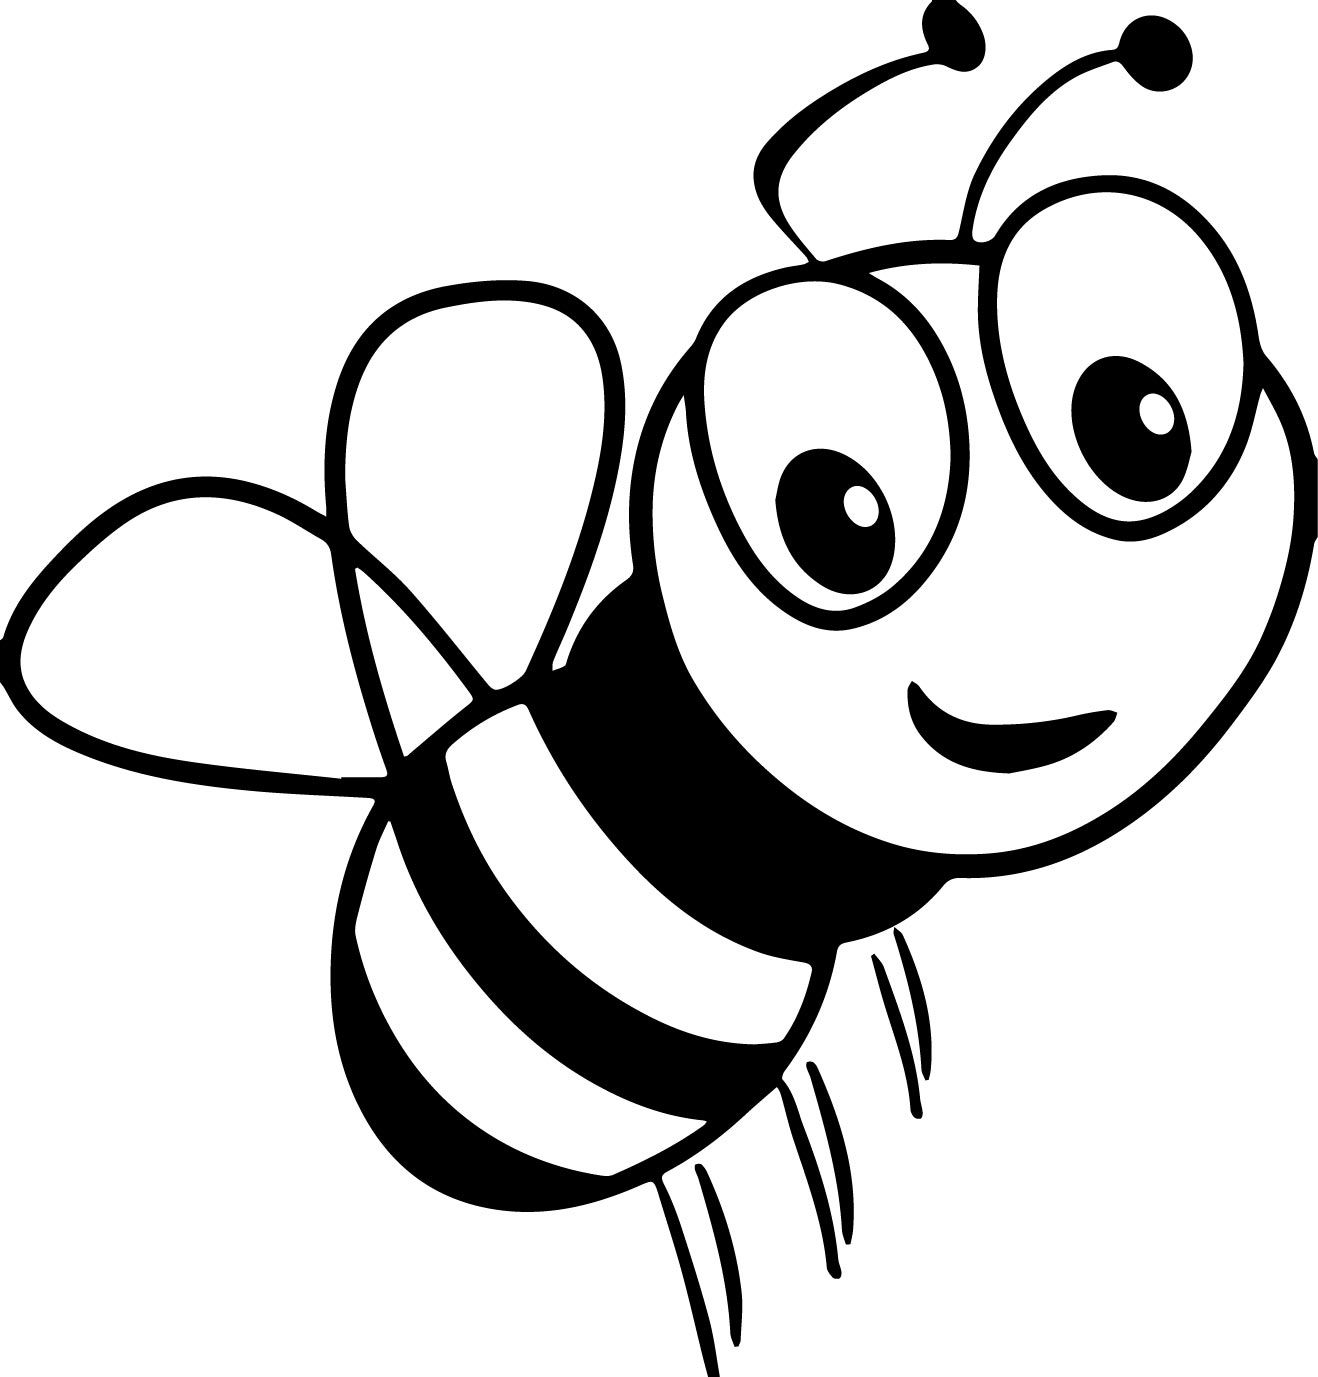 Cool Cartoon Bee Smile Coloring Page Bee Coloring Pages Cartoon